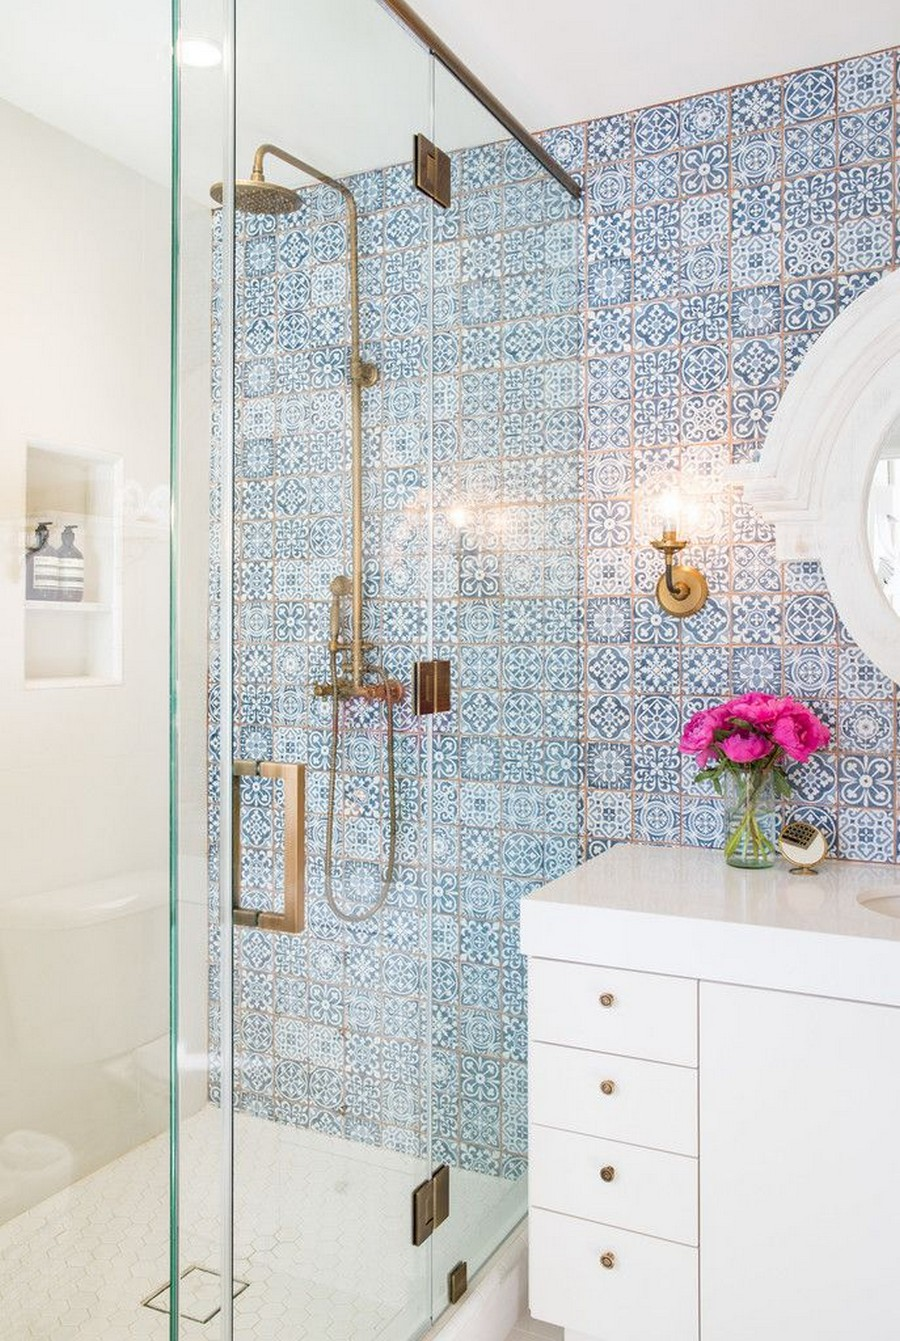 Bathroom Tile Trends Start The Year With The Right Foot With The Bathroom Tile Trends 2019 Start The Year With The Right Foot With The Bathroom Tile Trends 2019 14